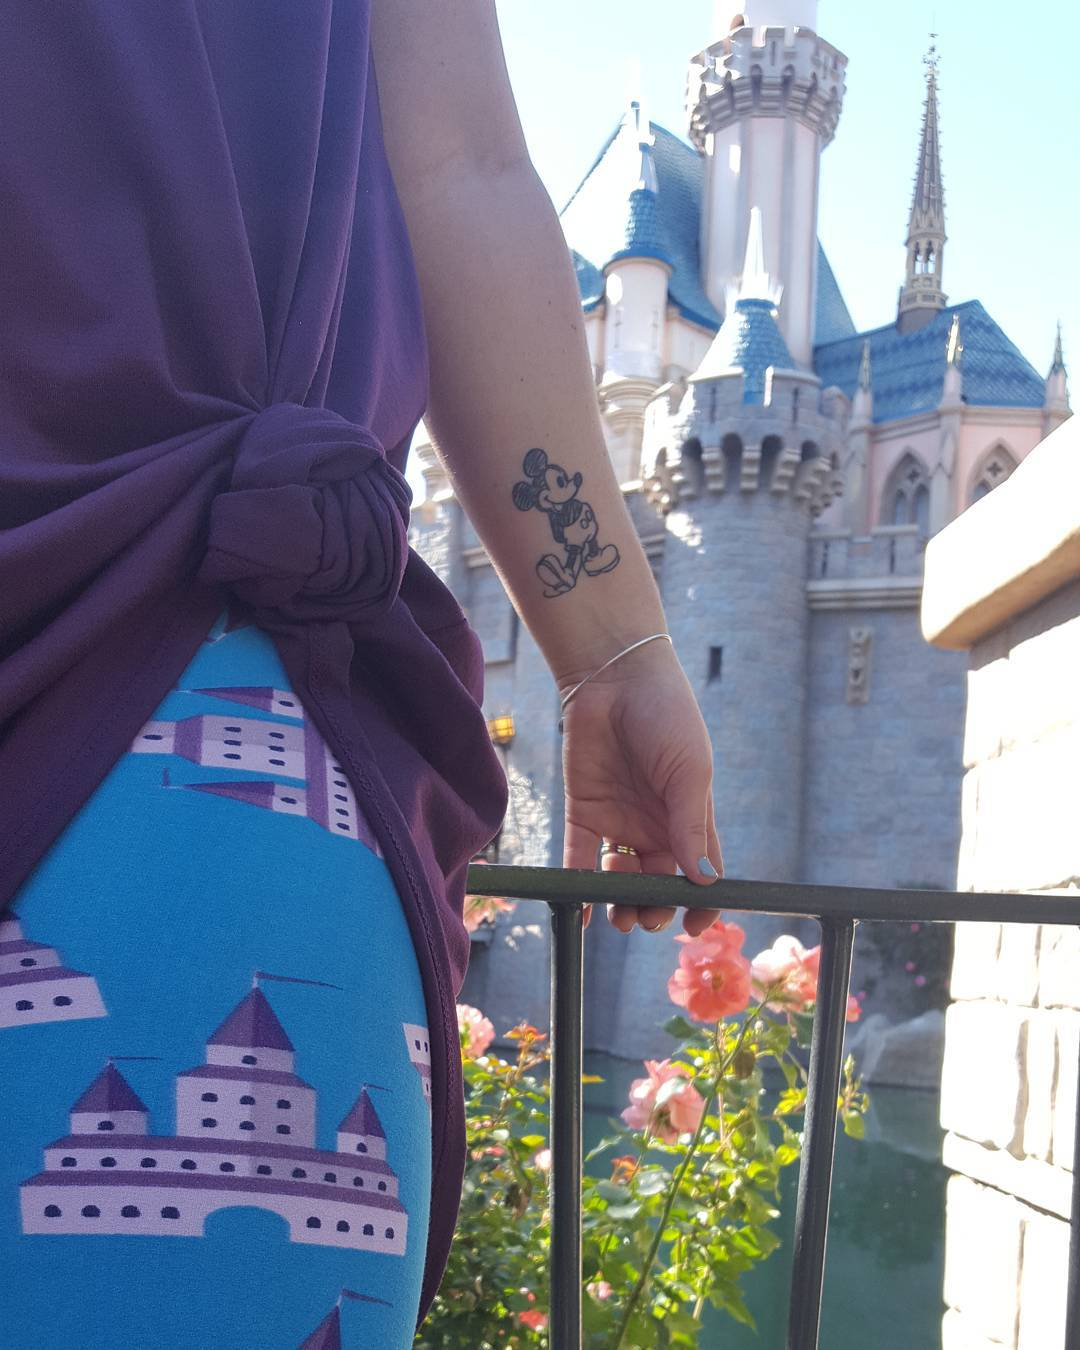 These Disney-inspired leggings are having a moment Mickey Mouse would approve of